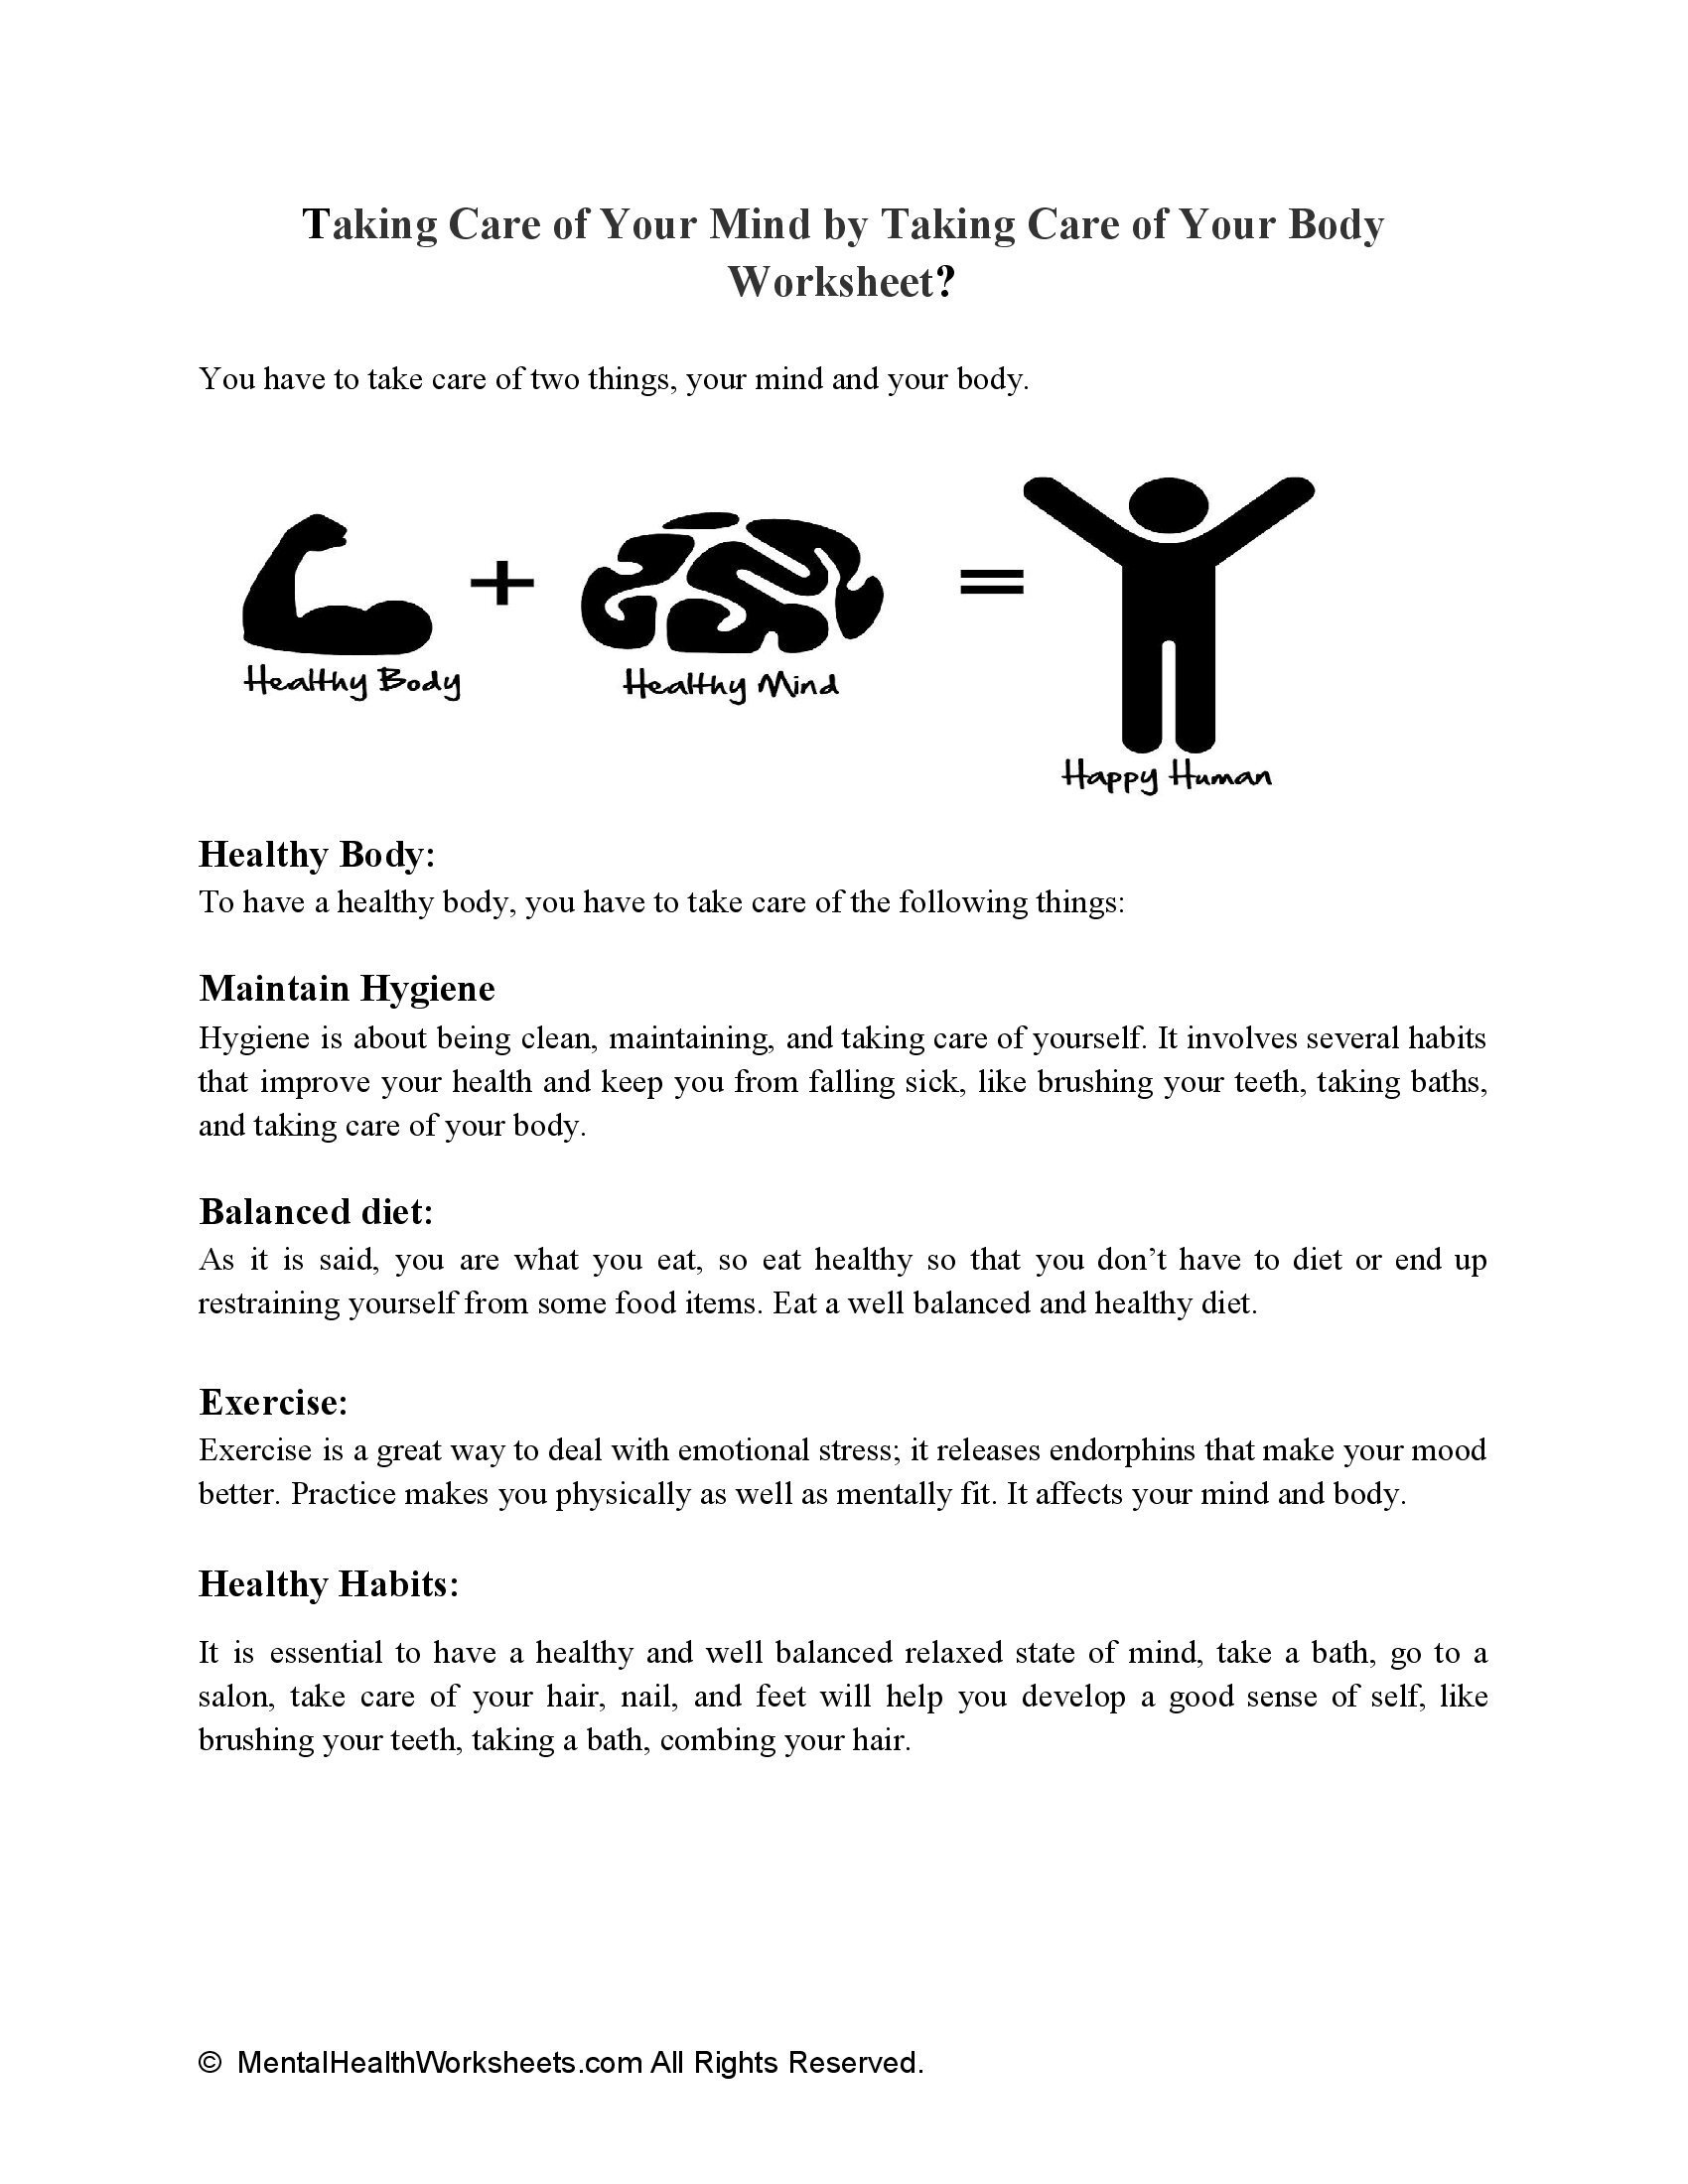 Taking Care of Your Mind by Taking Care of Your Body Worksheet